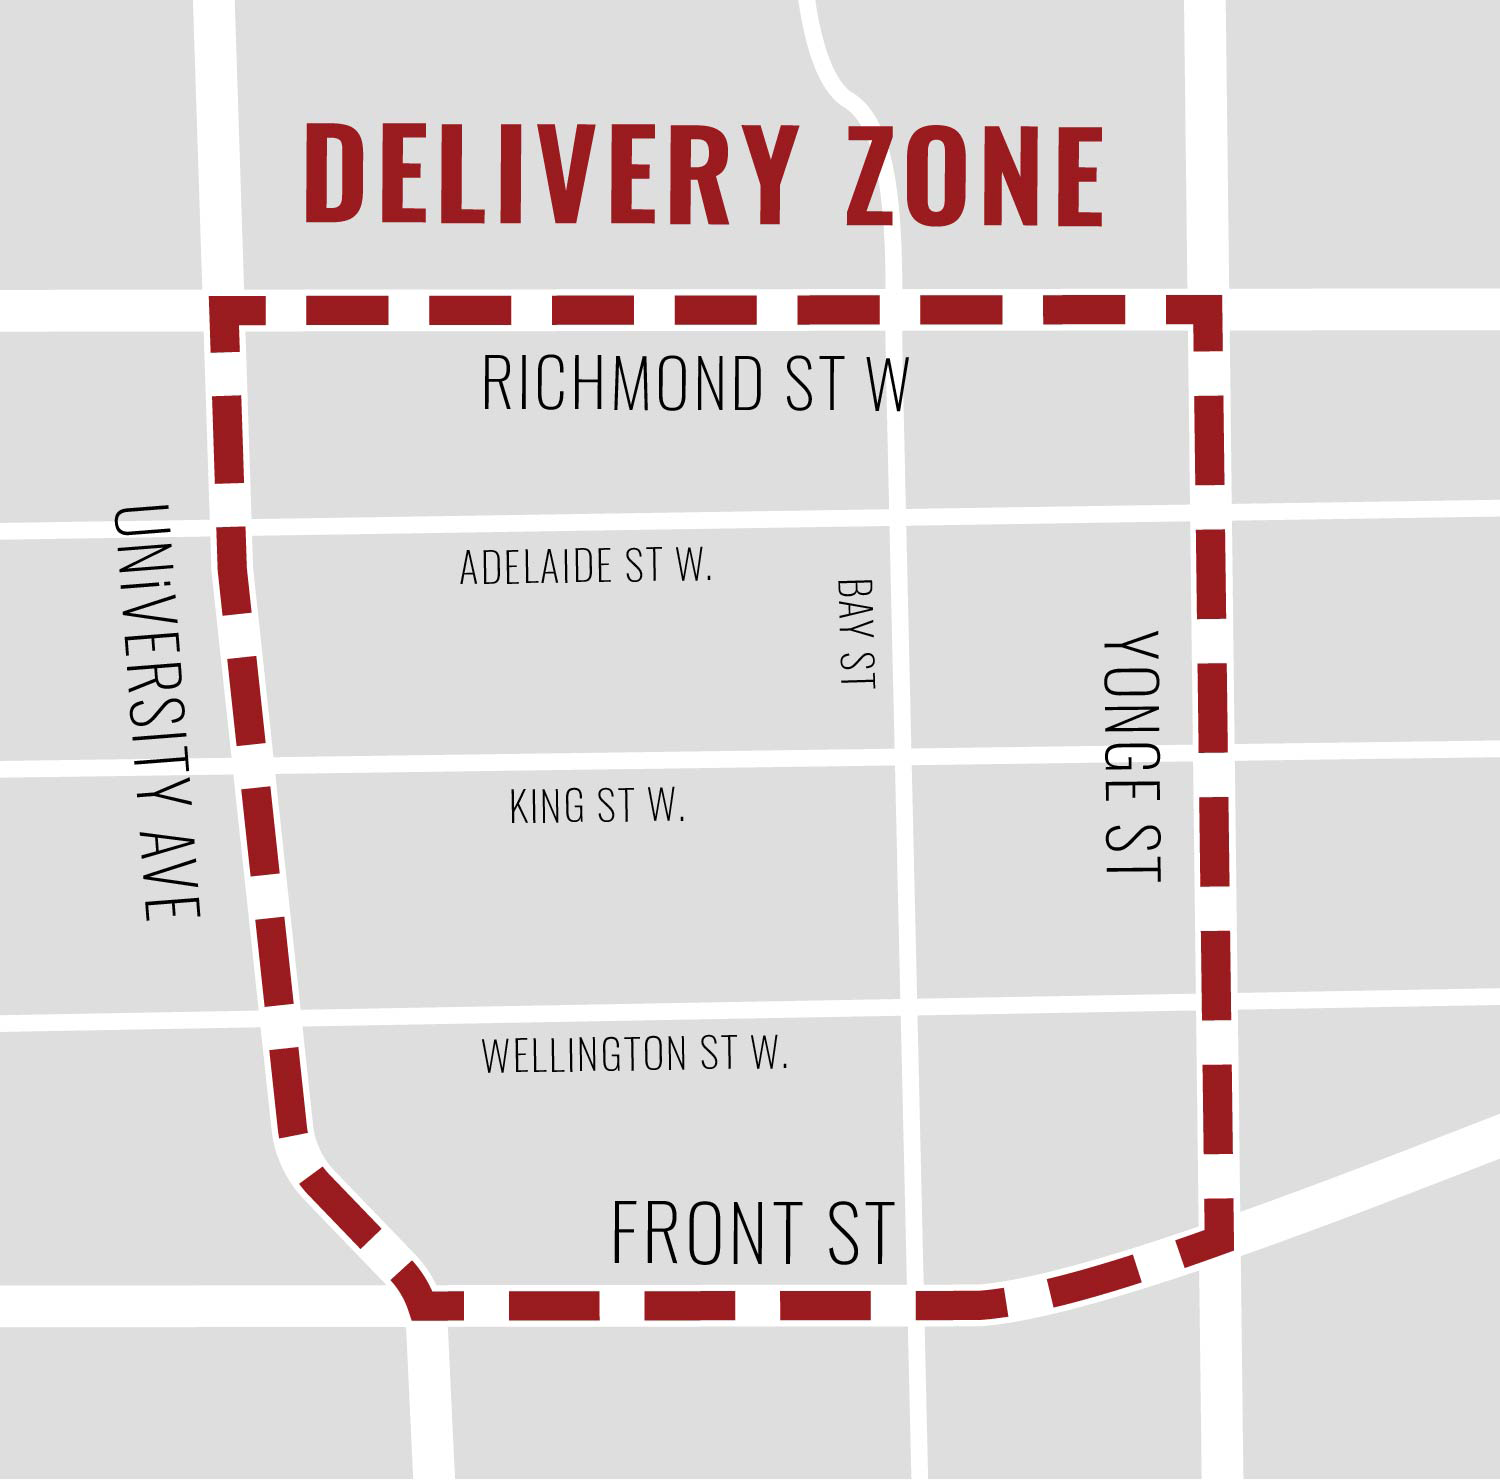 Our Delivery Zone